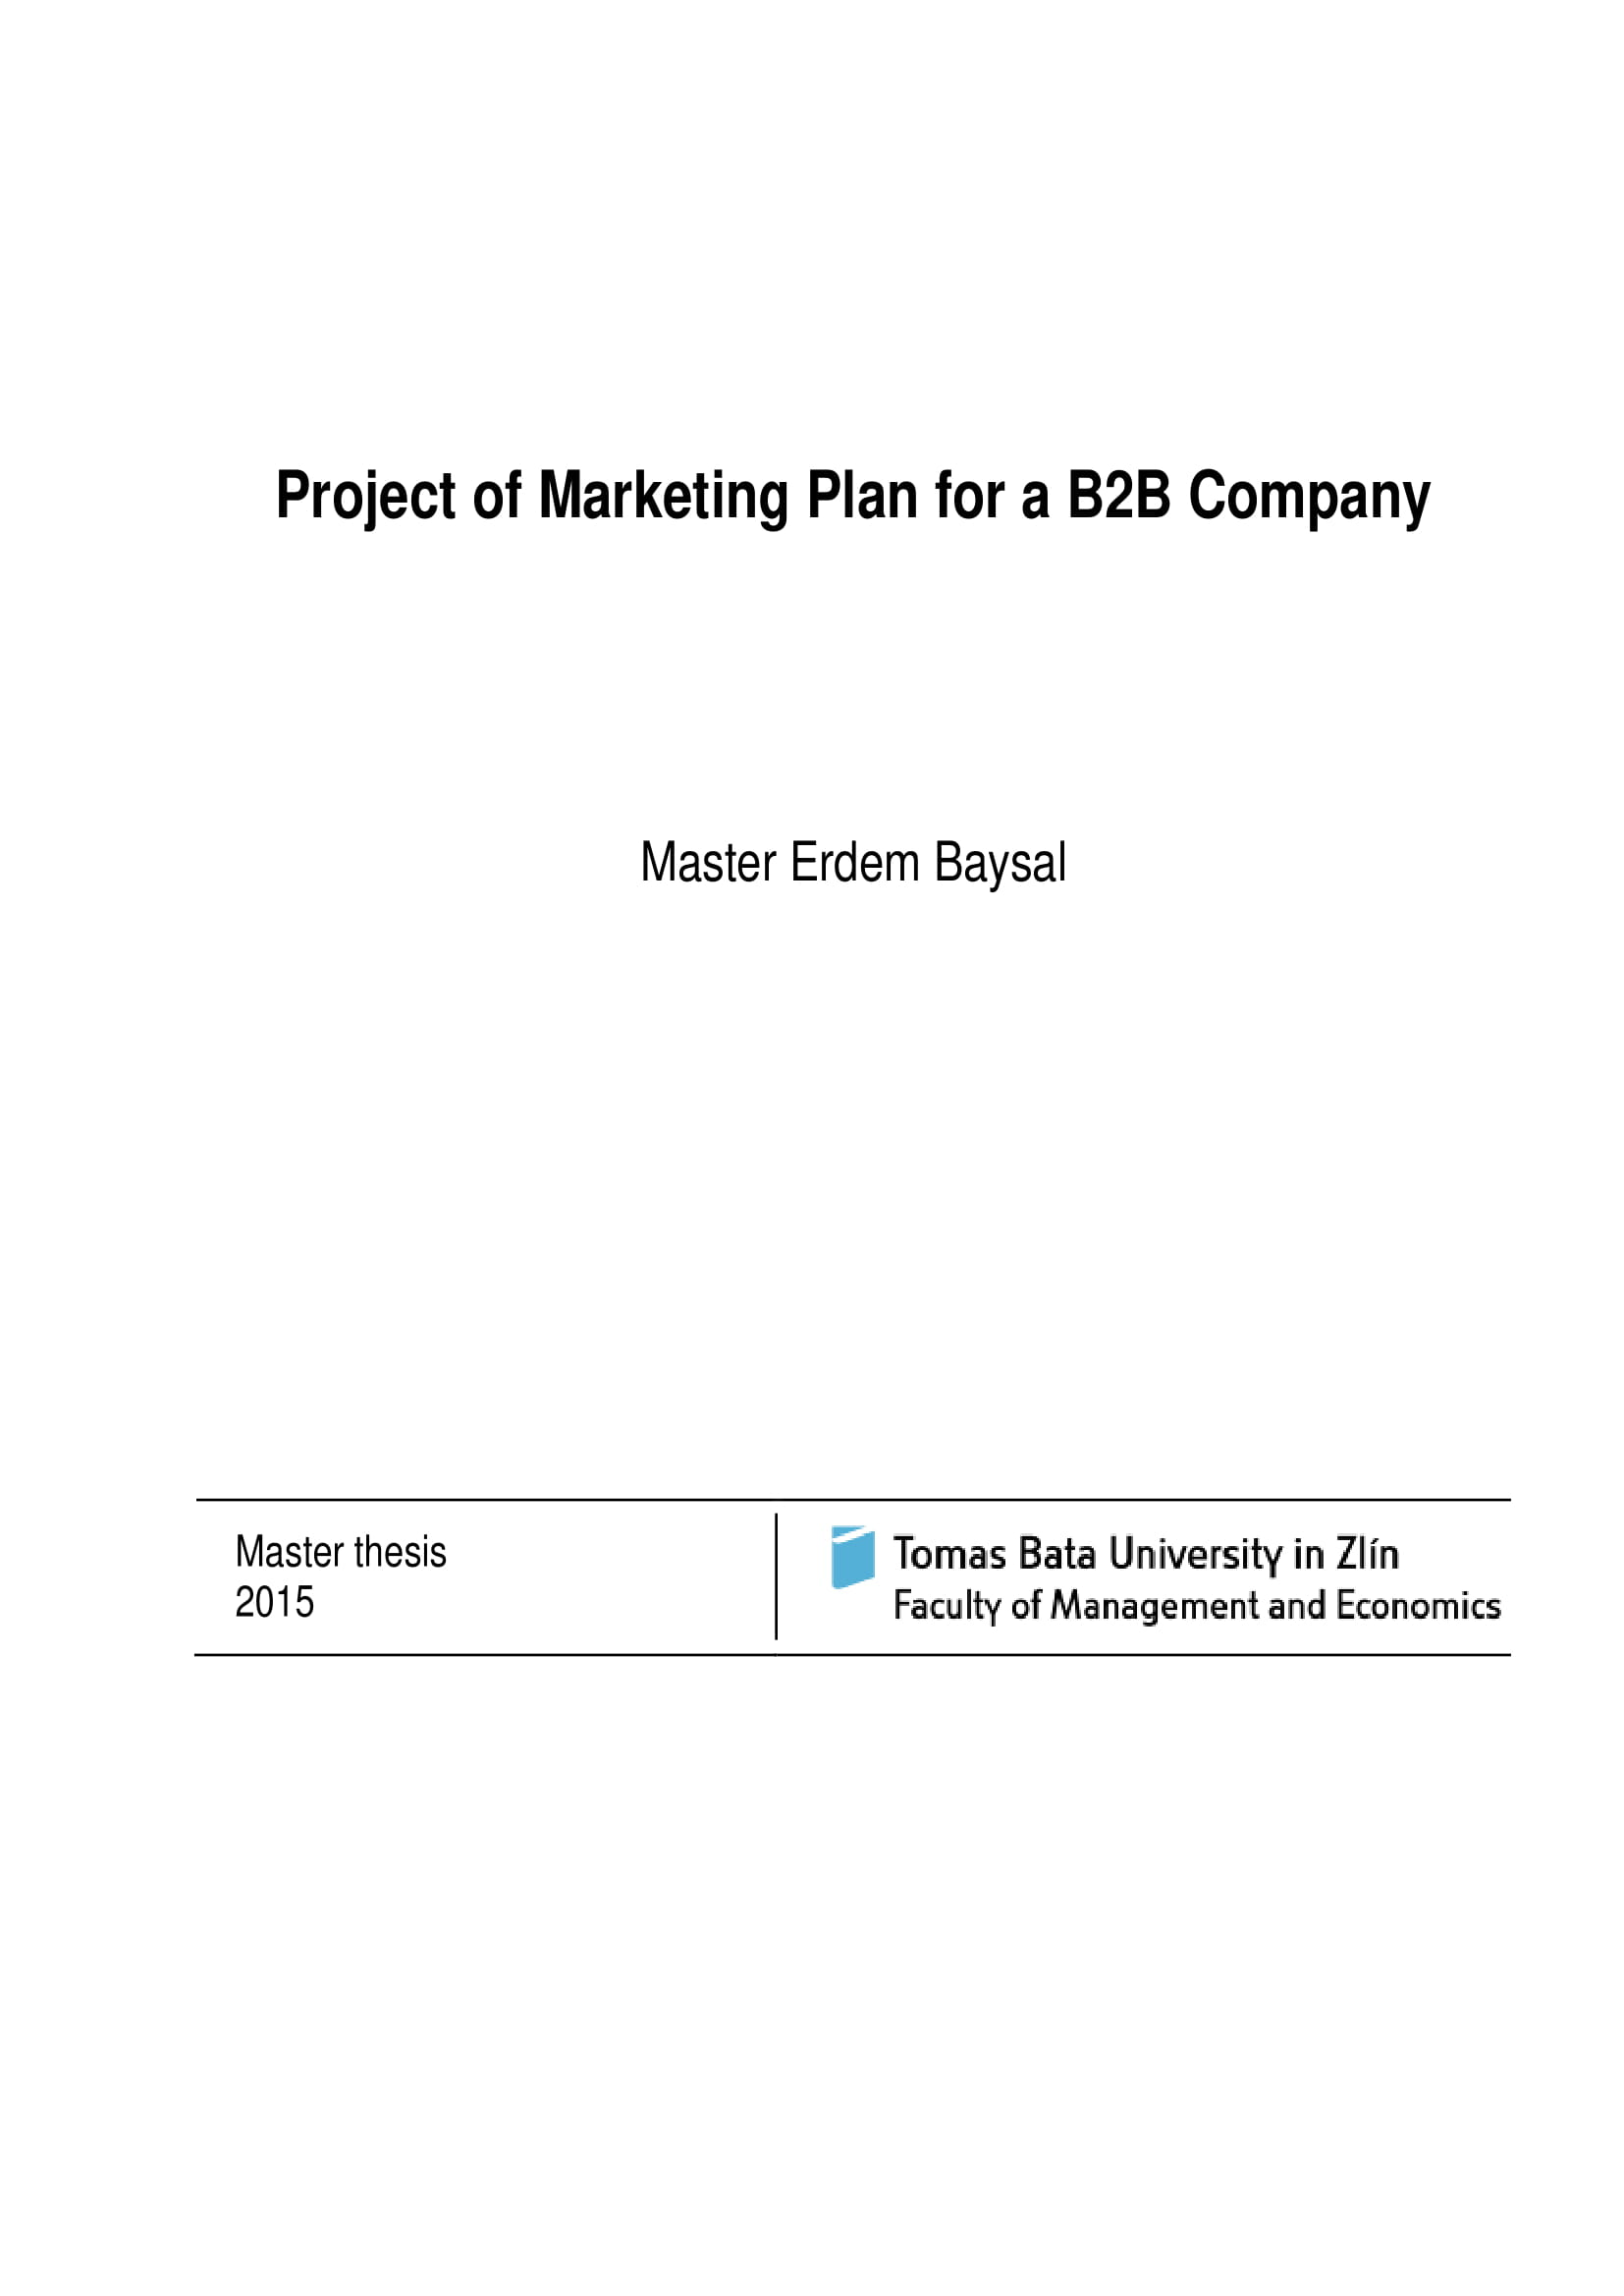 project of a marketing plan for a b2b company example 01